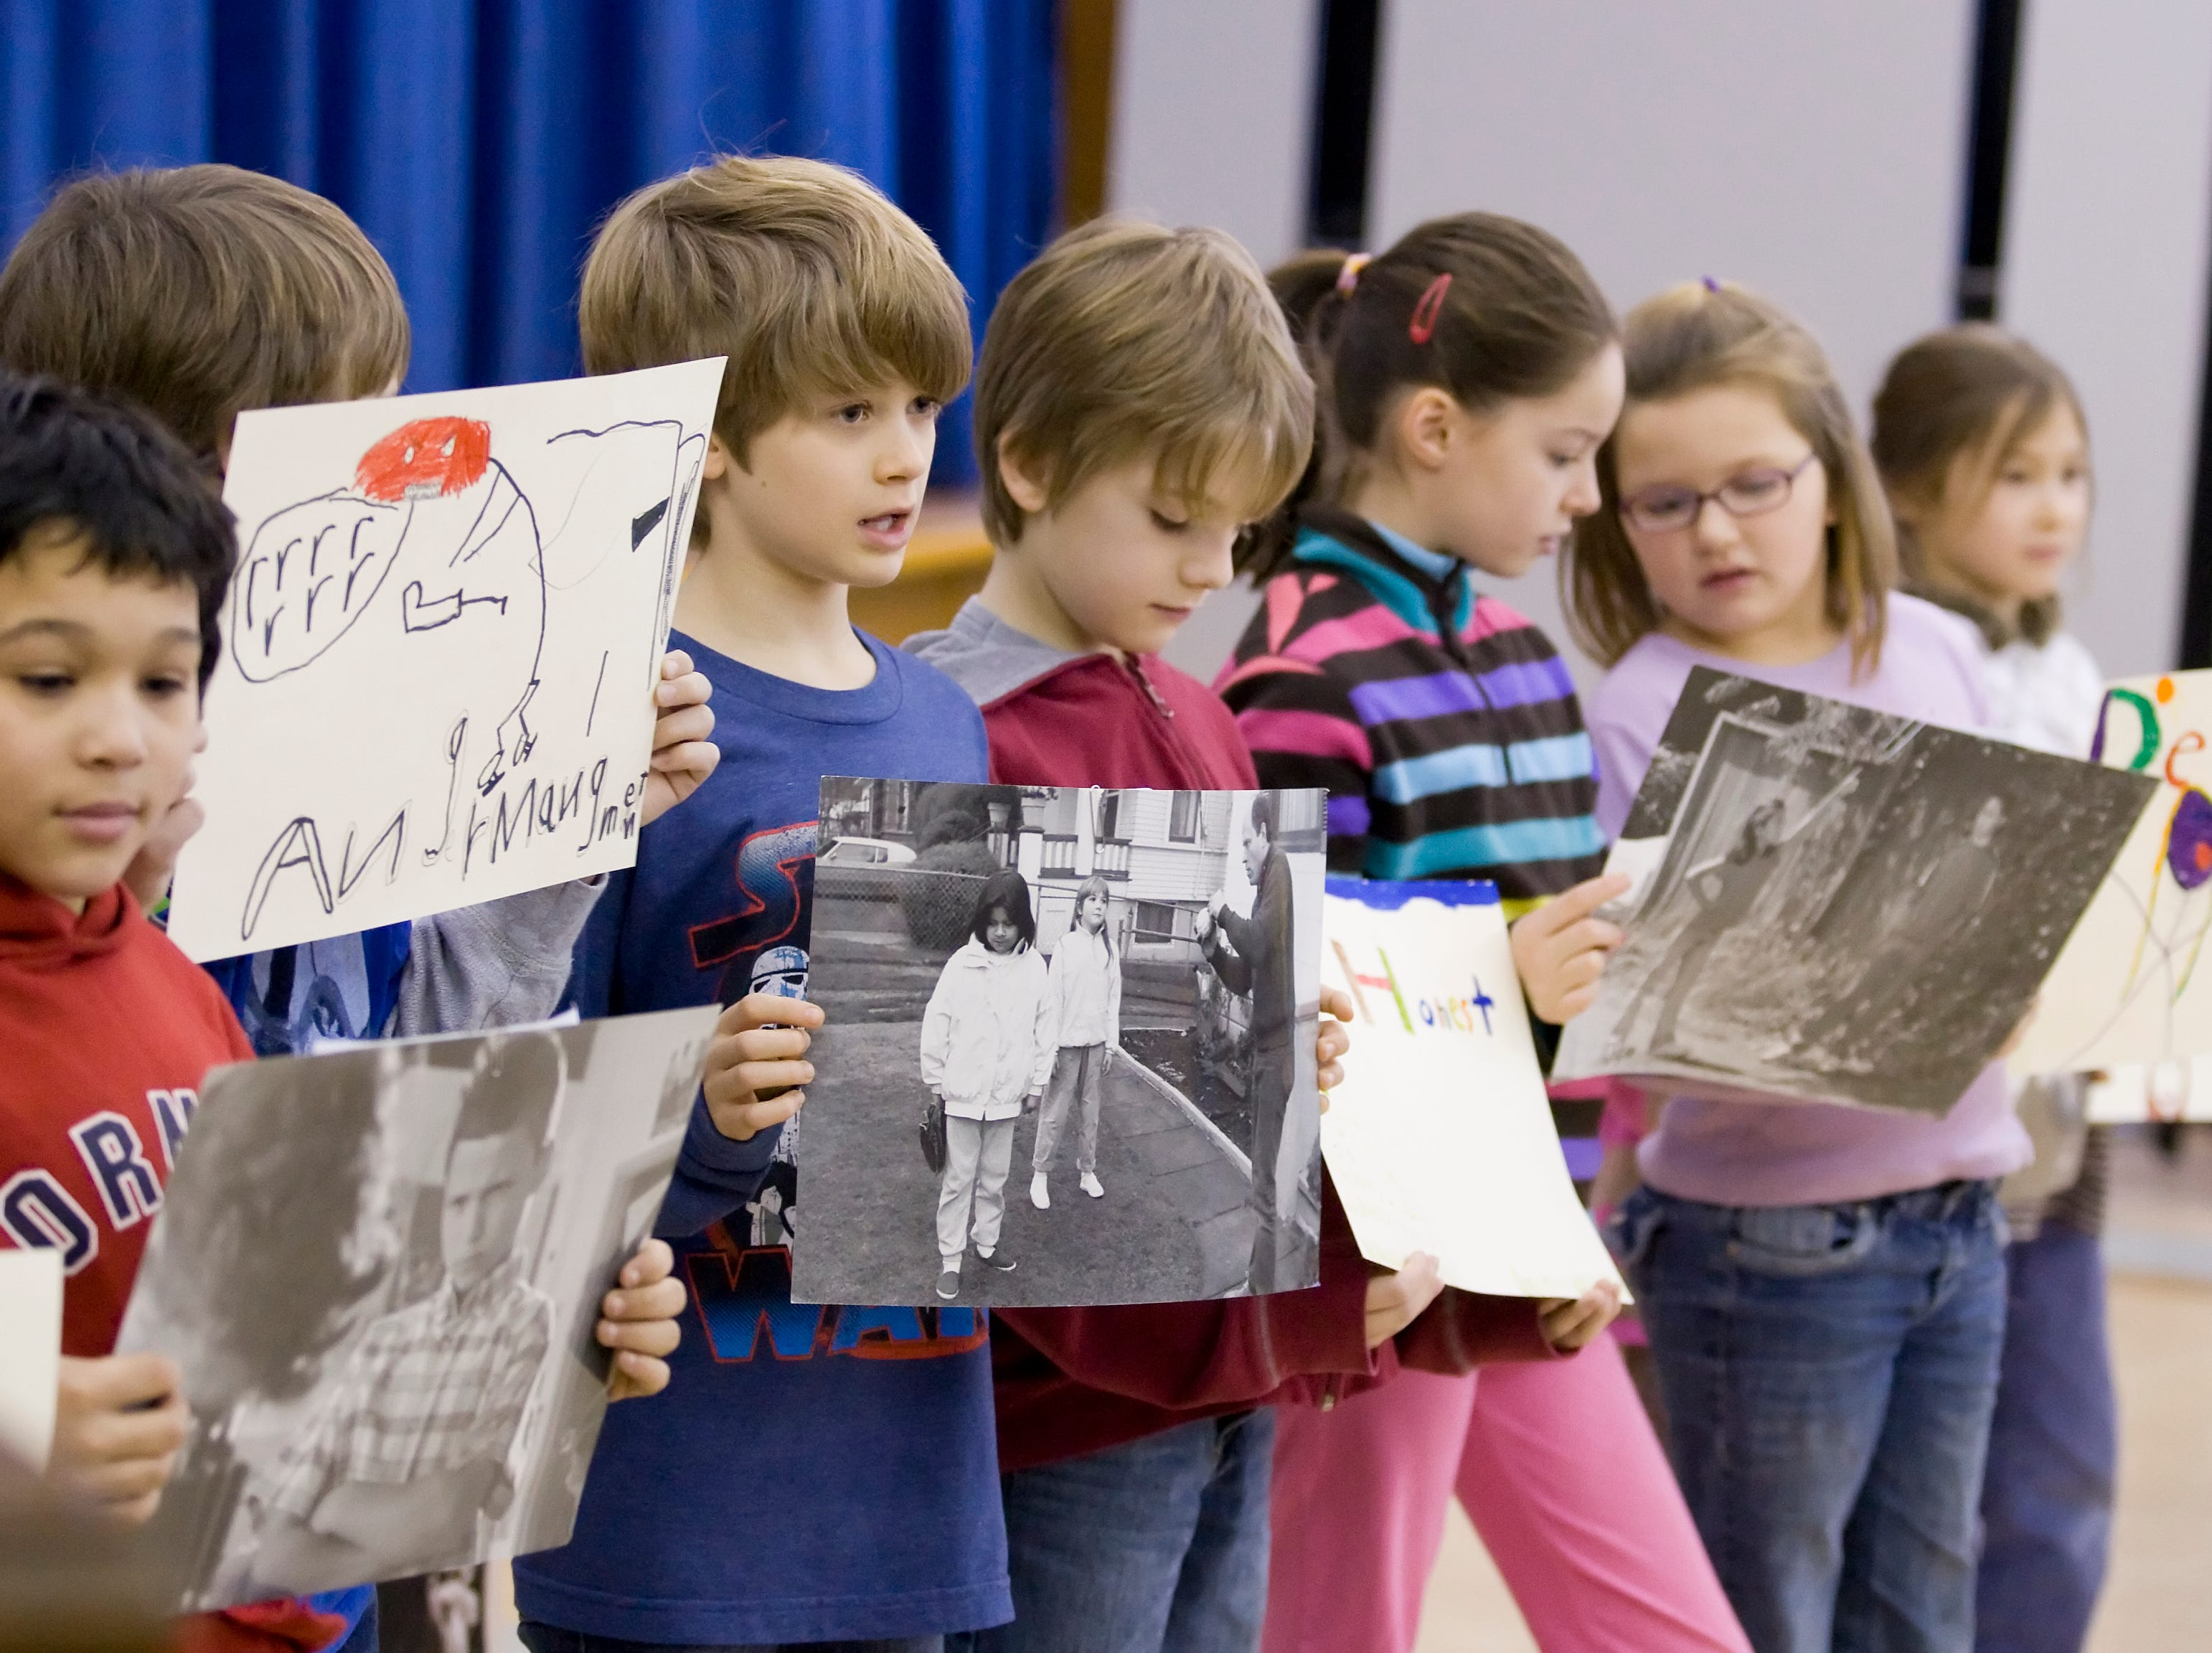 2012: Cayuga Heights Elementary School third-grade students show materials from the school's character education program, talk about how relates to their own lives and then share that with the rest of the students Friday morning at the school's Martin Luther King assembly.